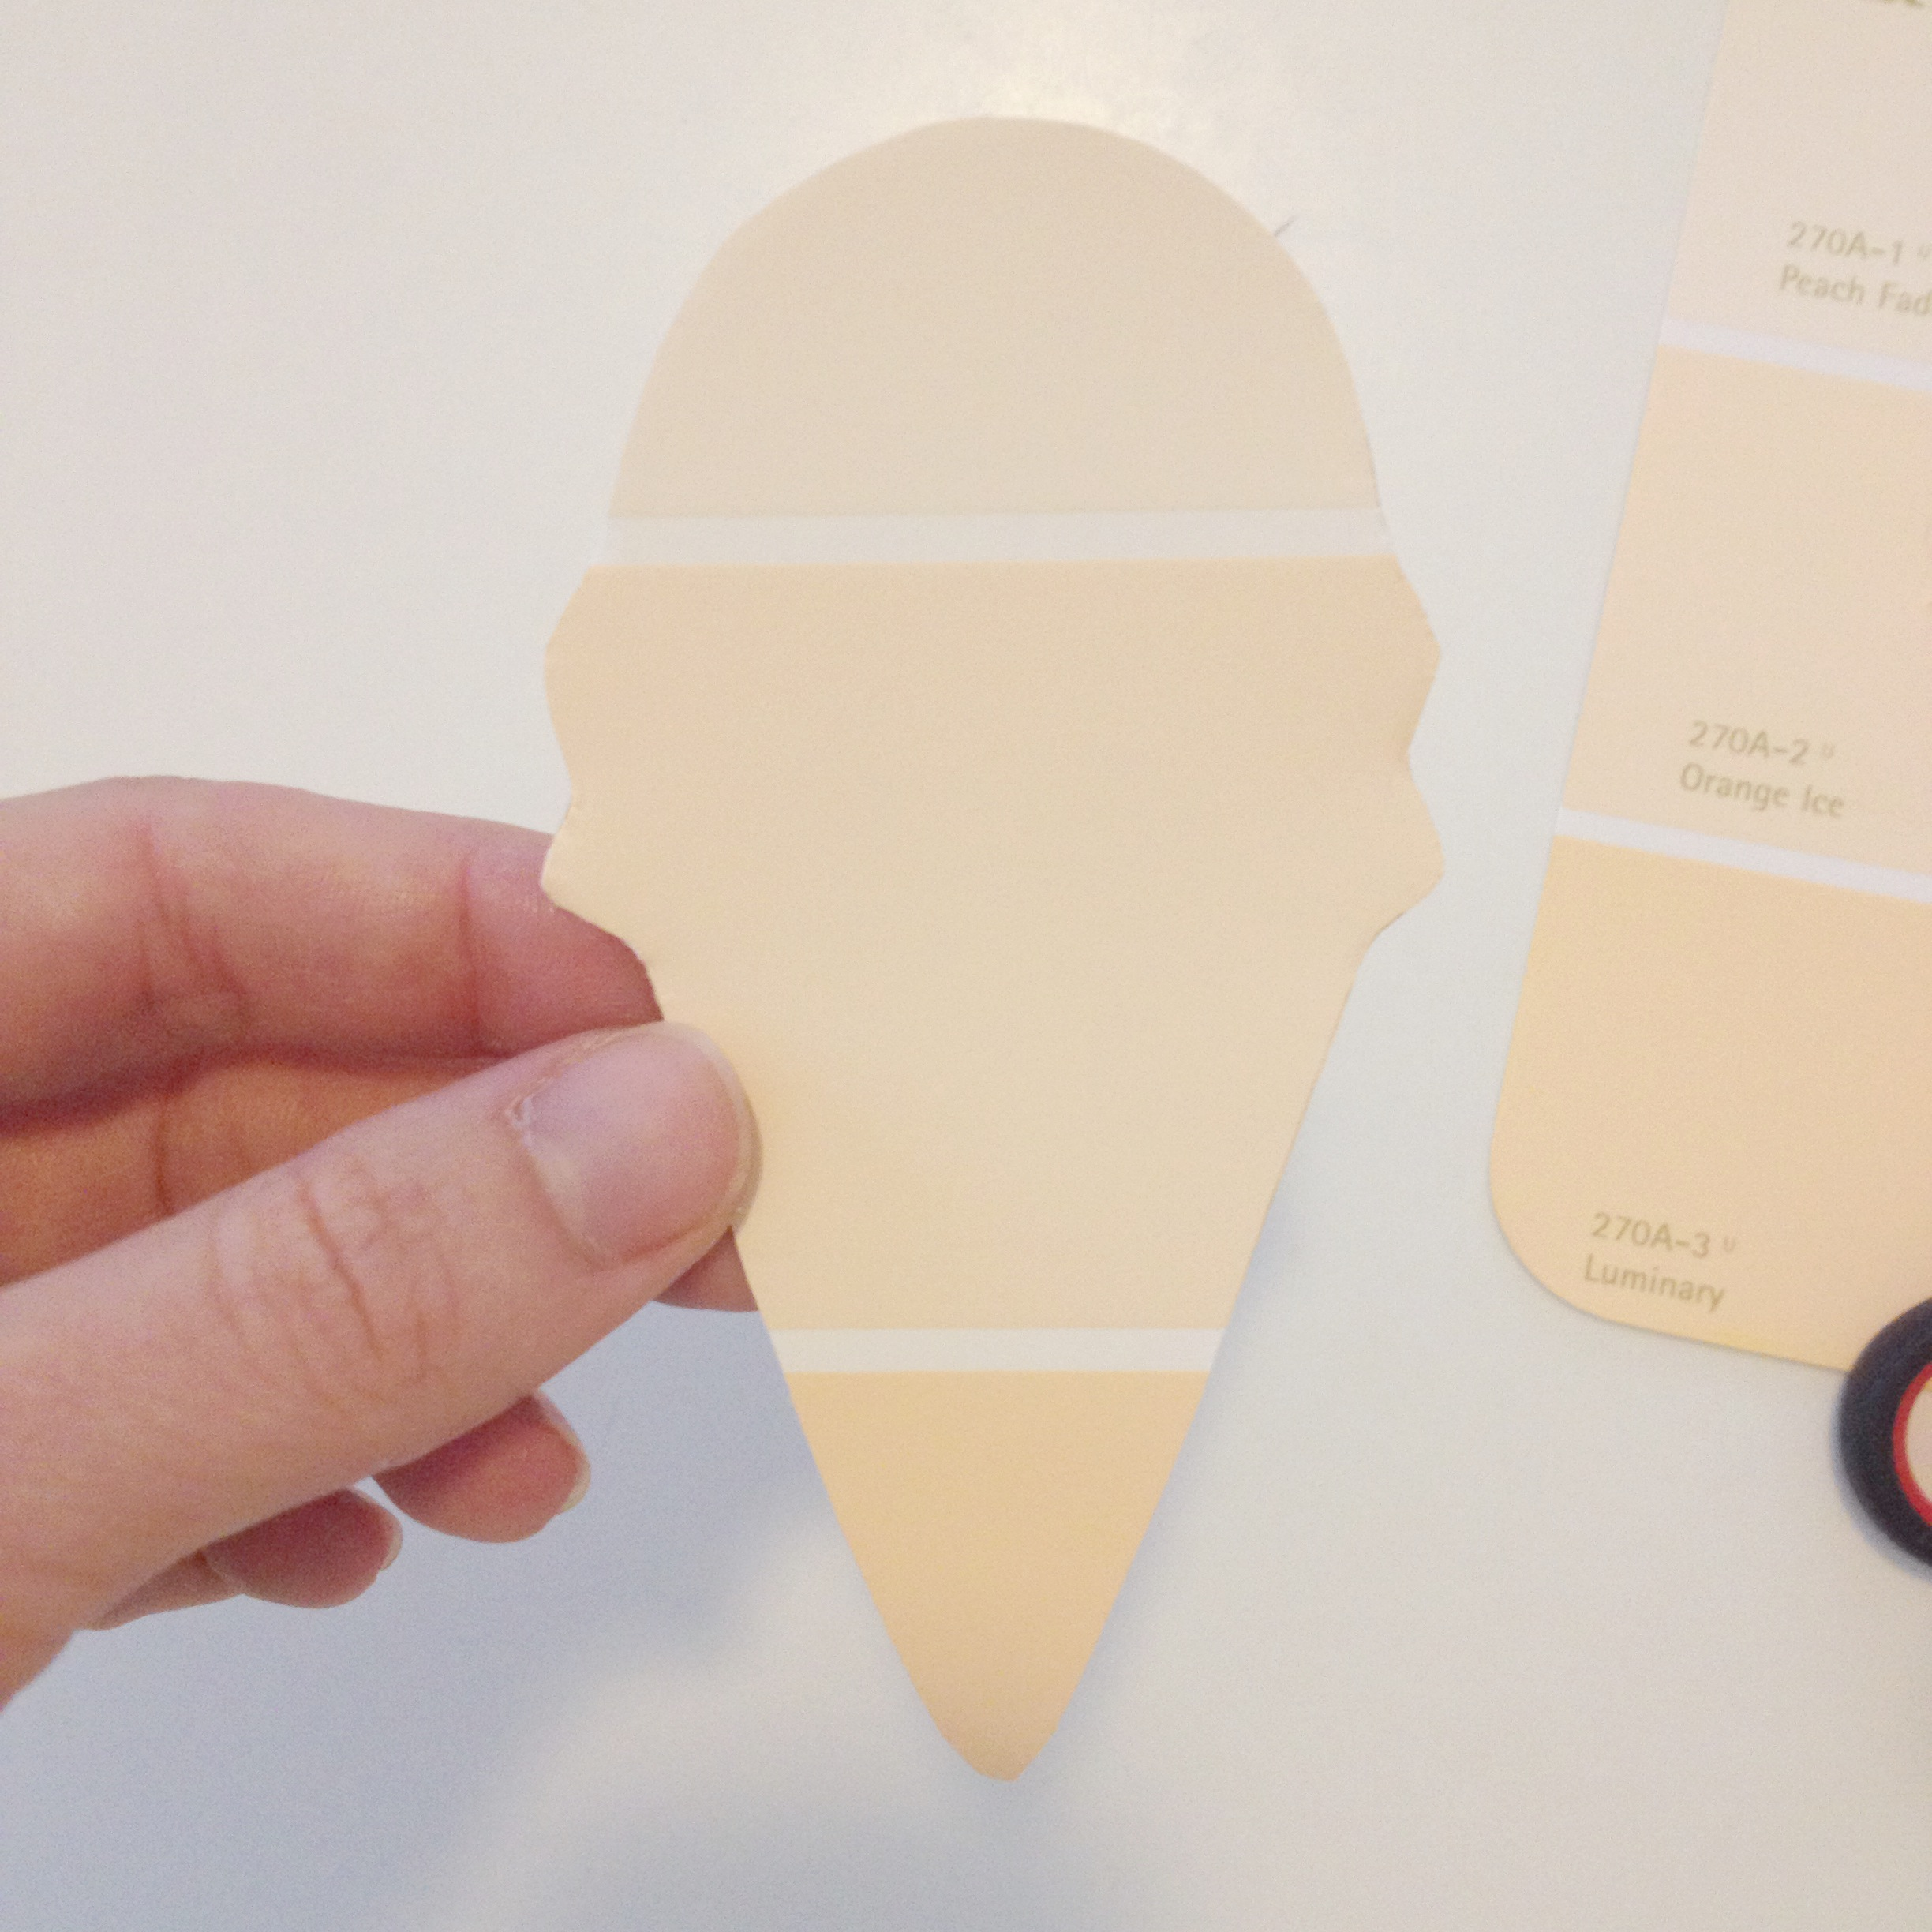 Cut Out an Ice Cream Cone Shape with a Cookie Cutter | DIY Garlands | Make Your Own Crafts with Paint Samples | Ombre Home Decor